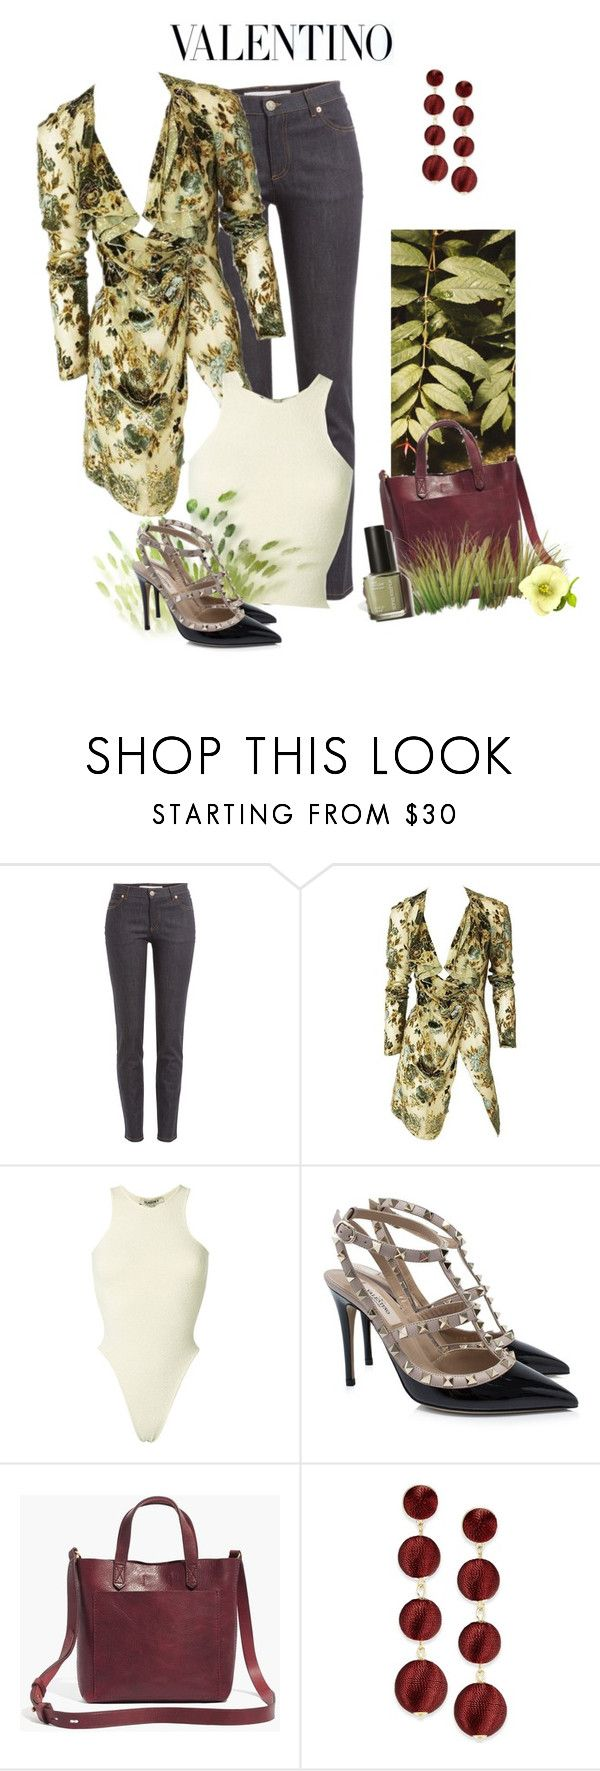 """""""Valentino Shoes!"""" by schneerose ❤ liked on Polyvore featuring Valentino, Yeezy by Kanye West, Madewell and INC International Concepts"""